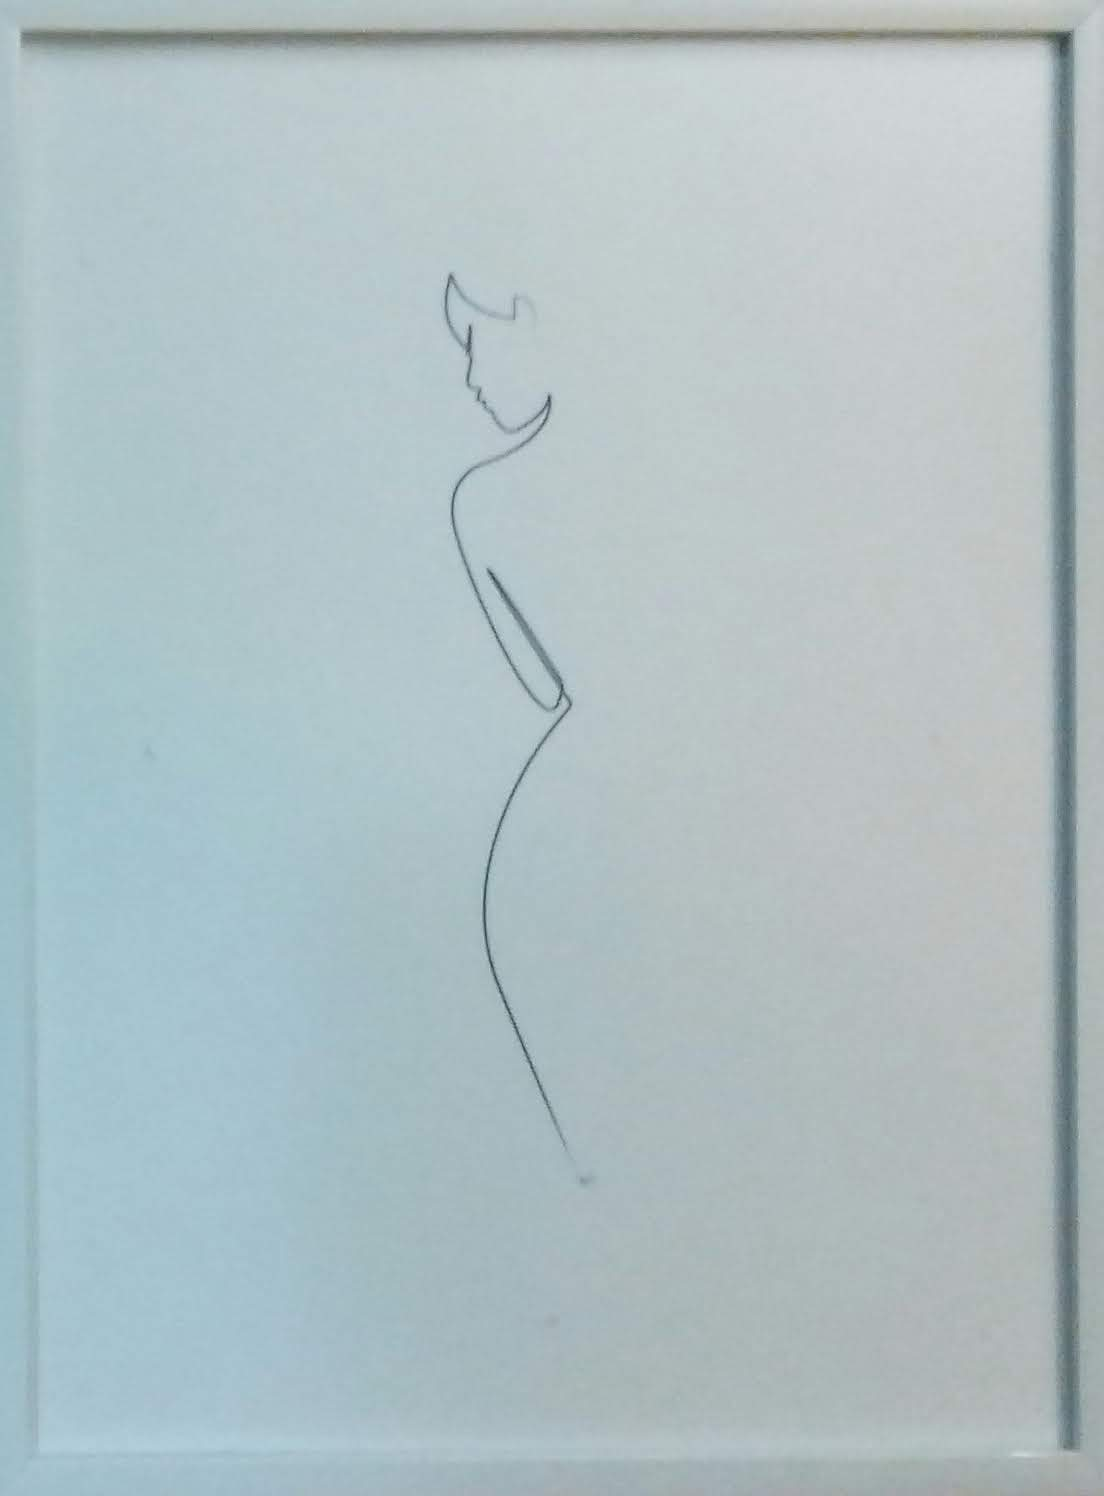 one line nude by quibe 20200102_223814-1.jpg